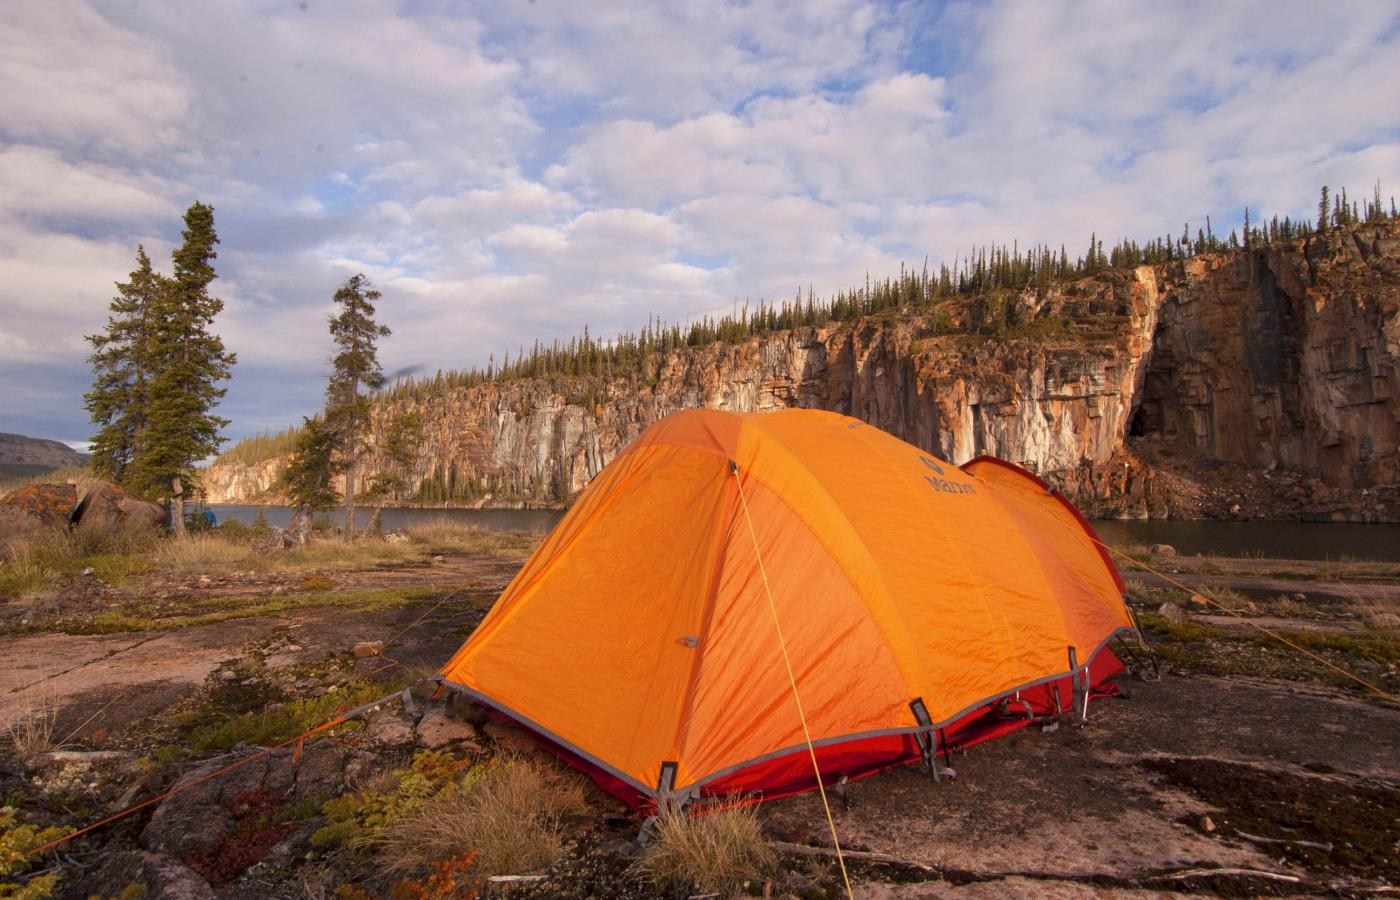 Explore the areas around Thaidene Nëné in the East Arm of Great Slave Lake in Canada's Northwest Territories